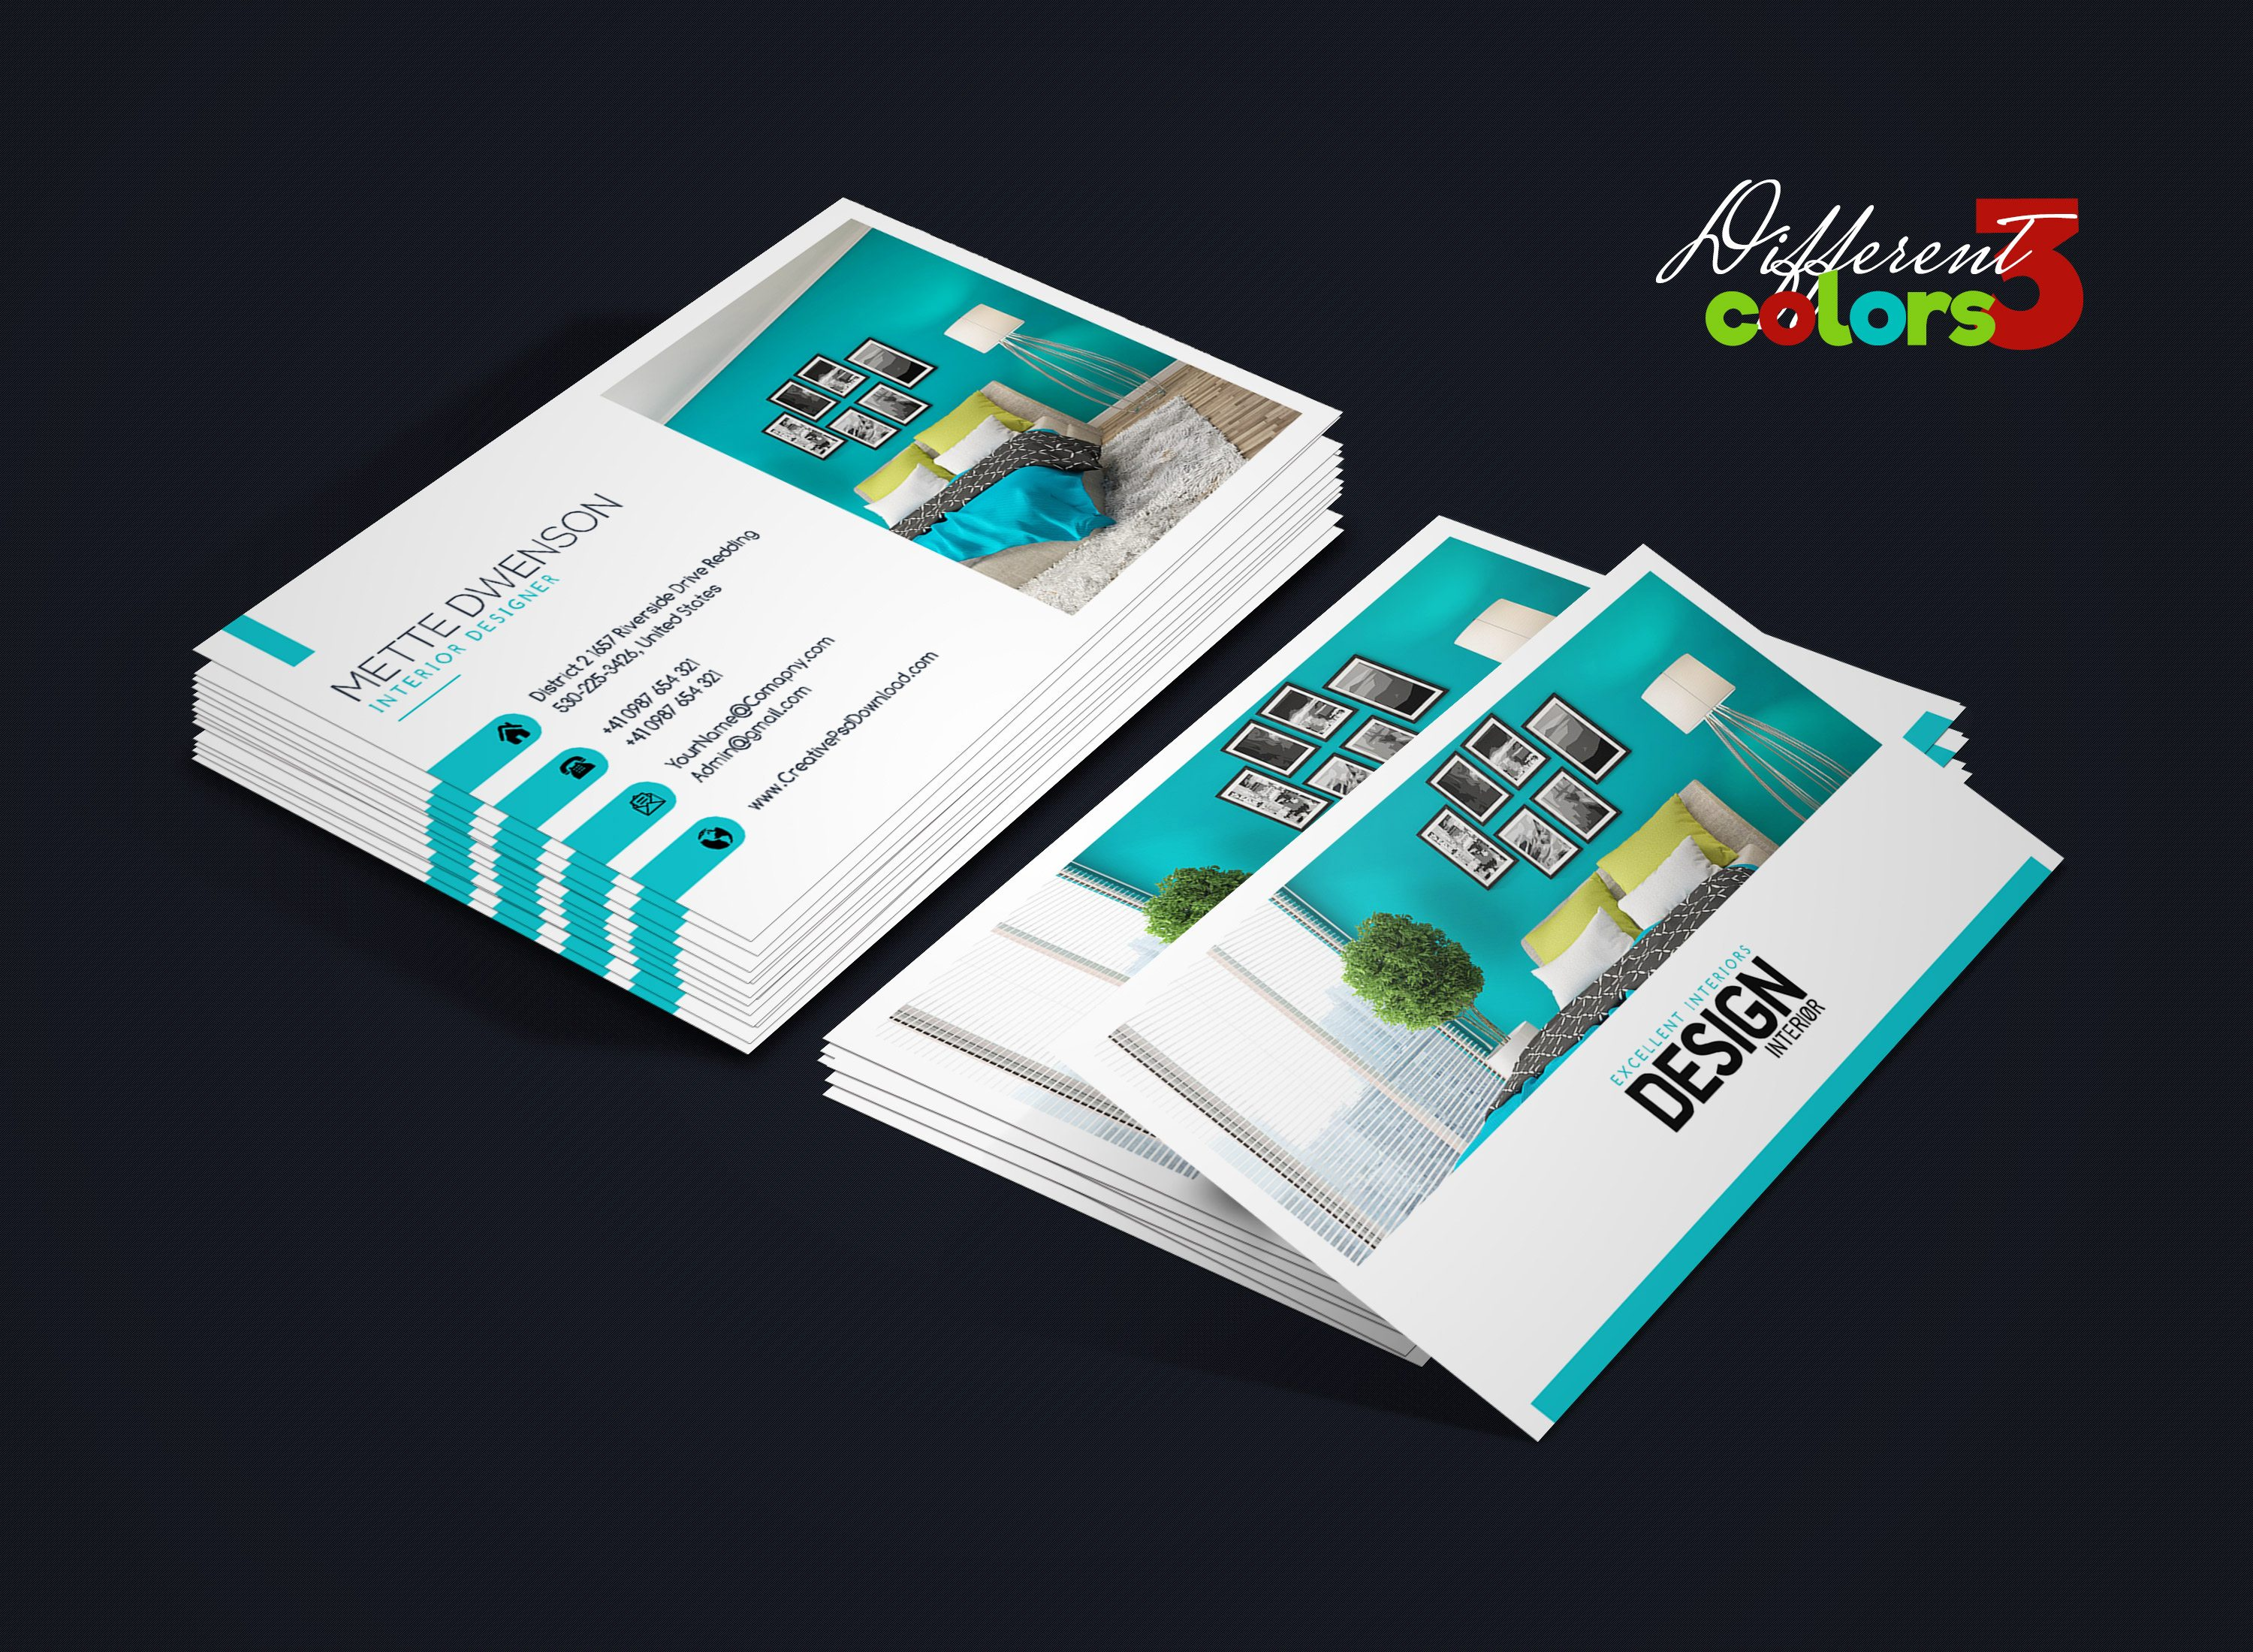 interior design business pin stunning card gallery cards ideas also